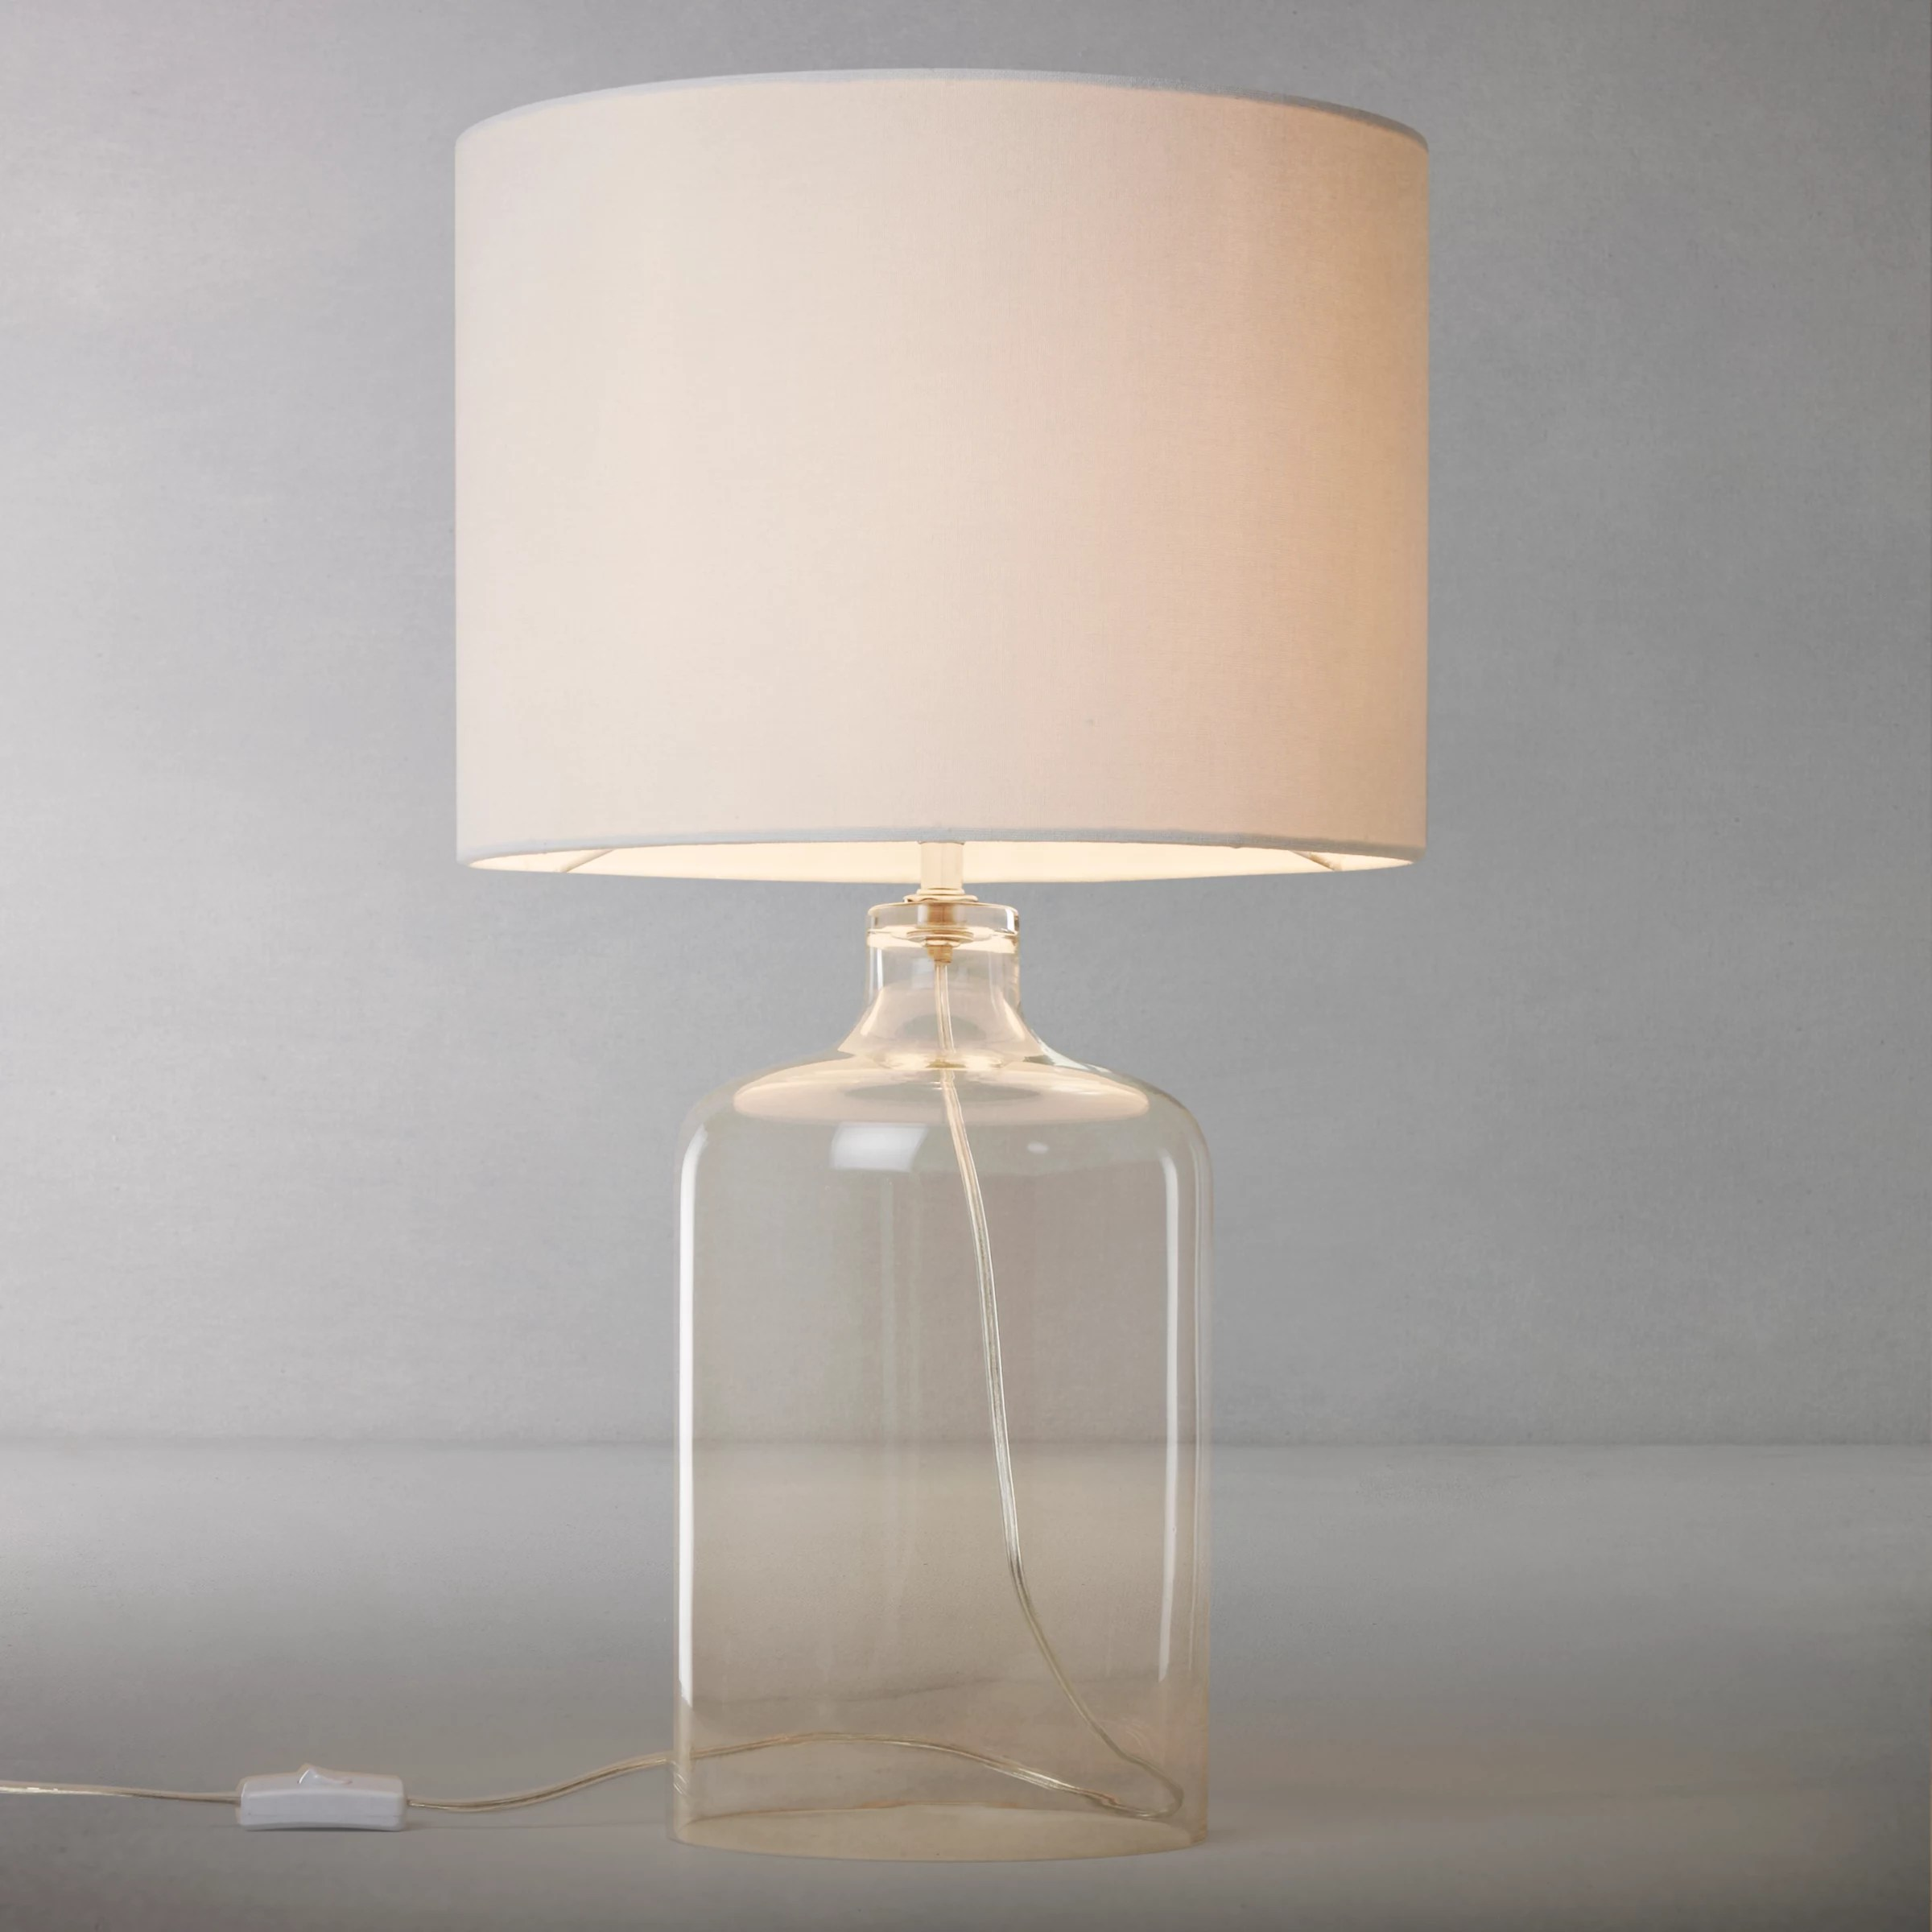 Glass Jar Lamp Shade John Lewis Croft Collection William Glass Bottle Table Lamp At John